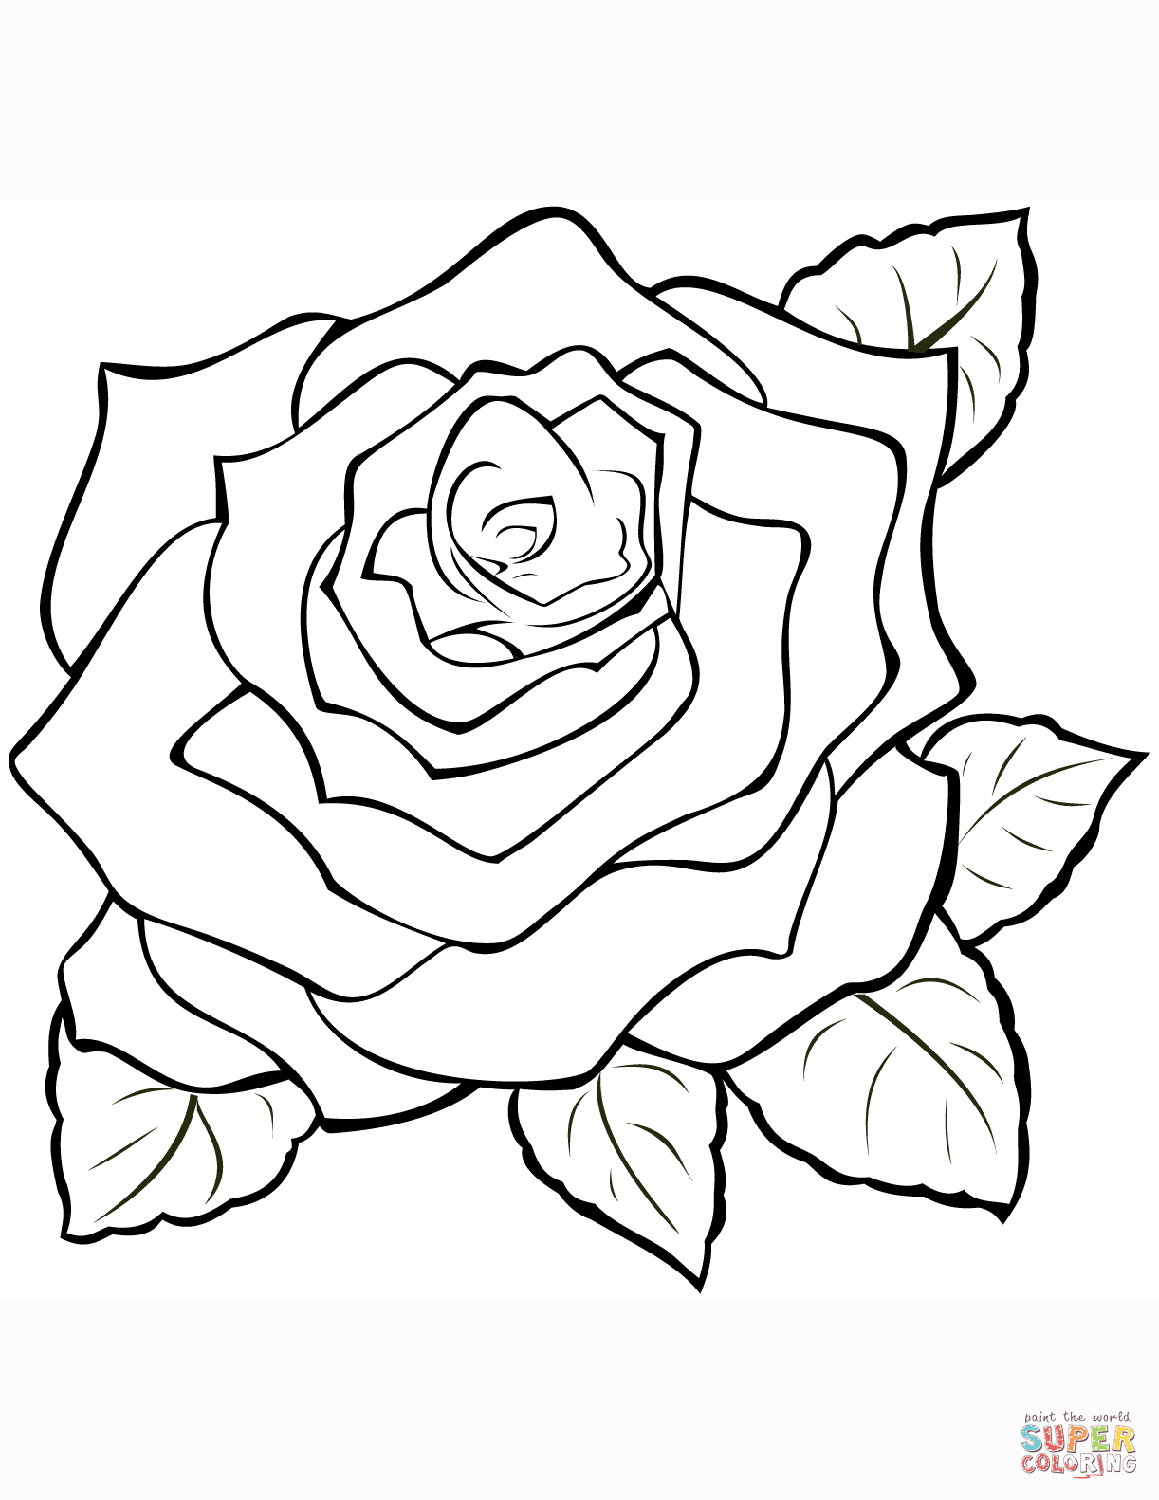 picture of a rose to color coloring ville of rose a picture color to